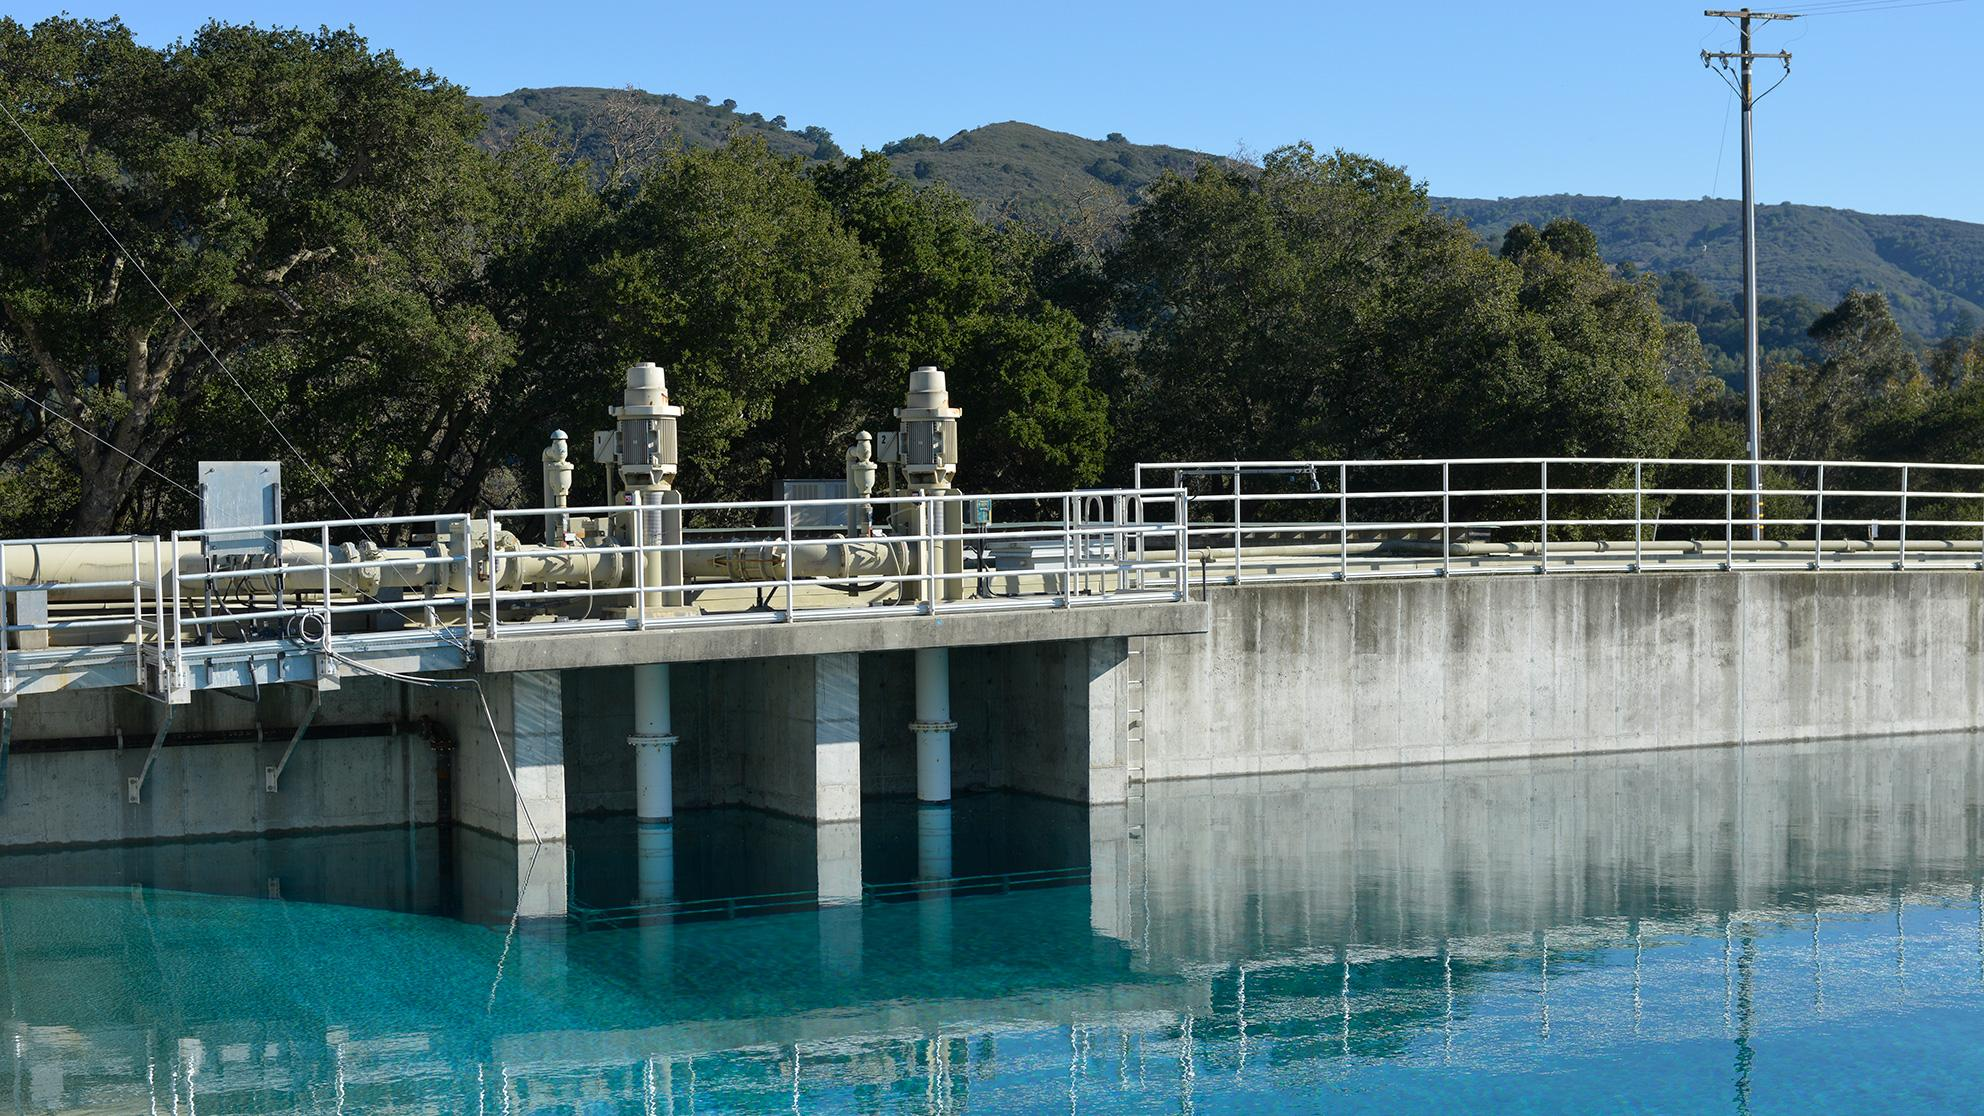 Water reservoir with green hills and blue sky in the background